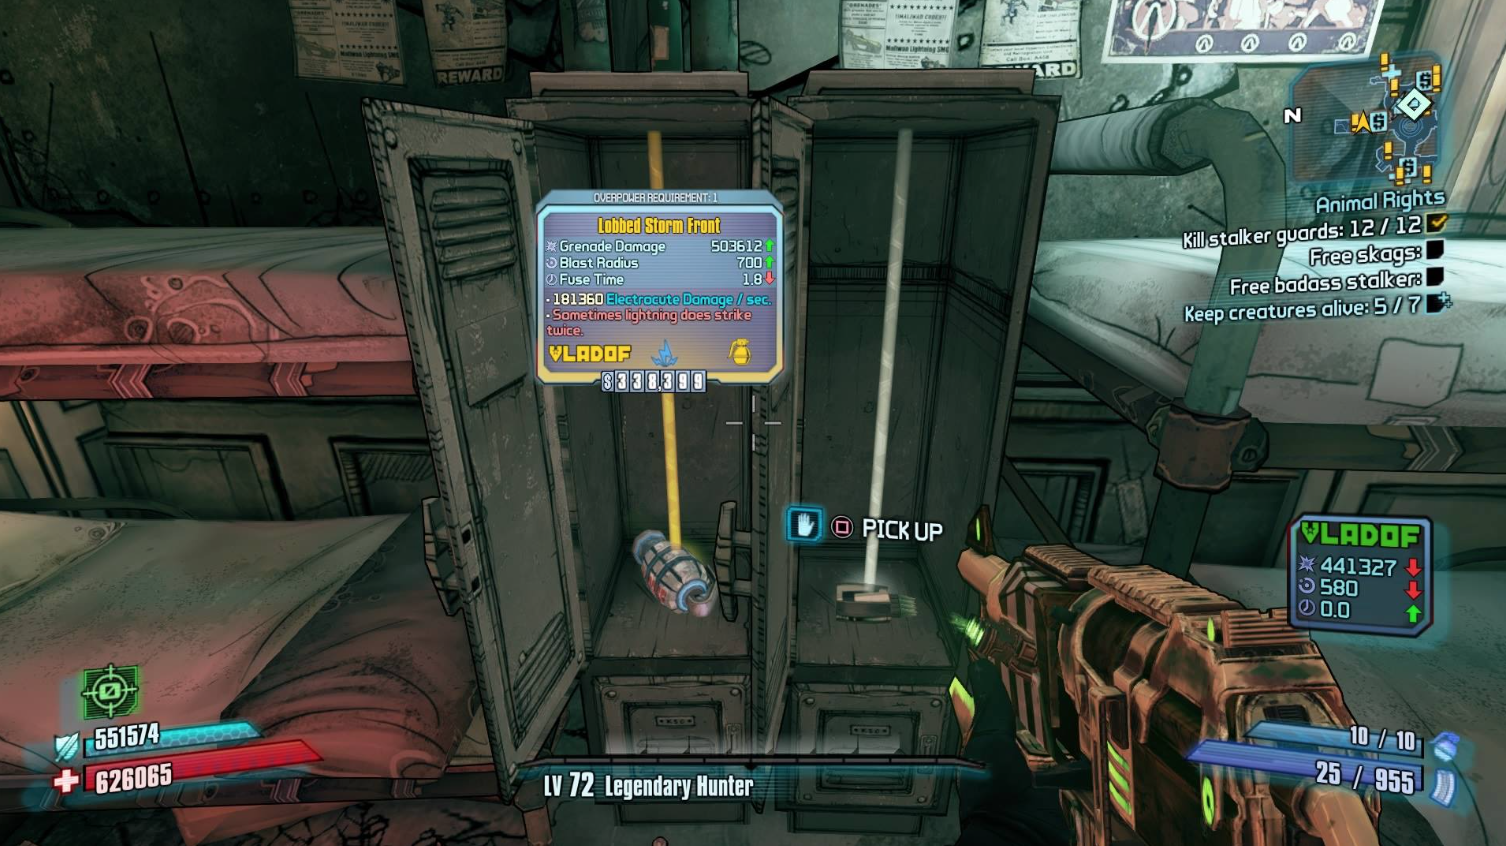 Peachy Whats Been Your Luckiest Drop Ever Loot And Weapons The Wiring 101 Capemaxxcnl